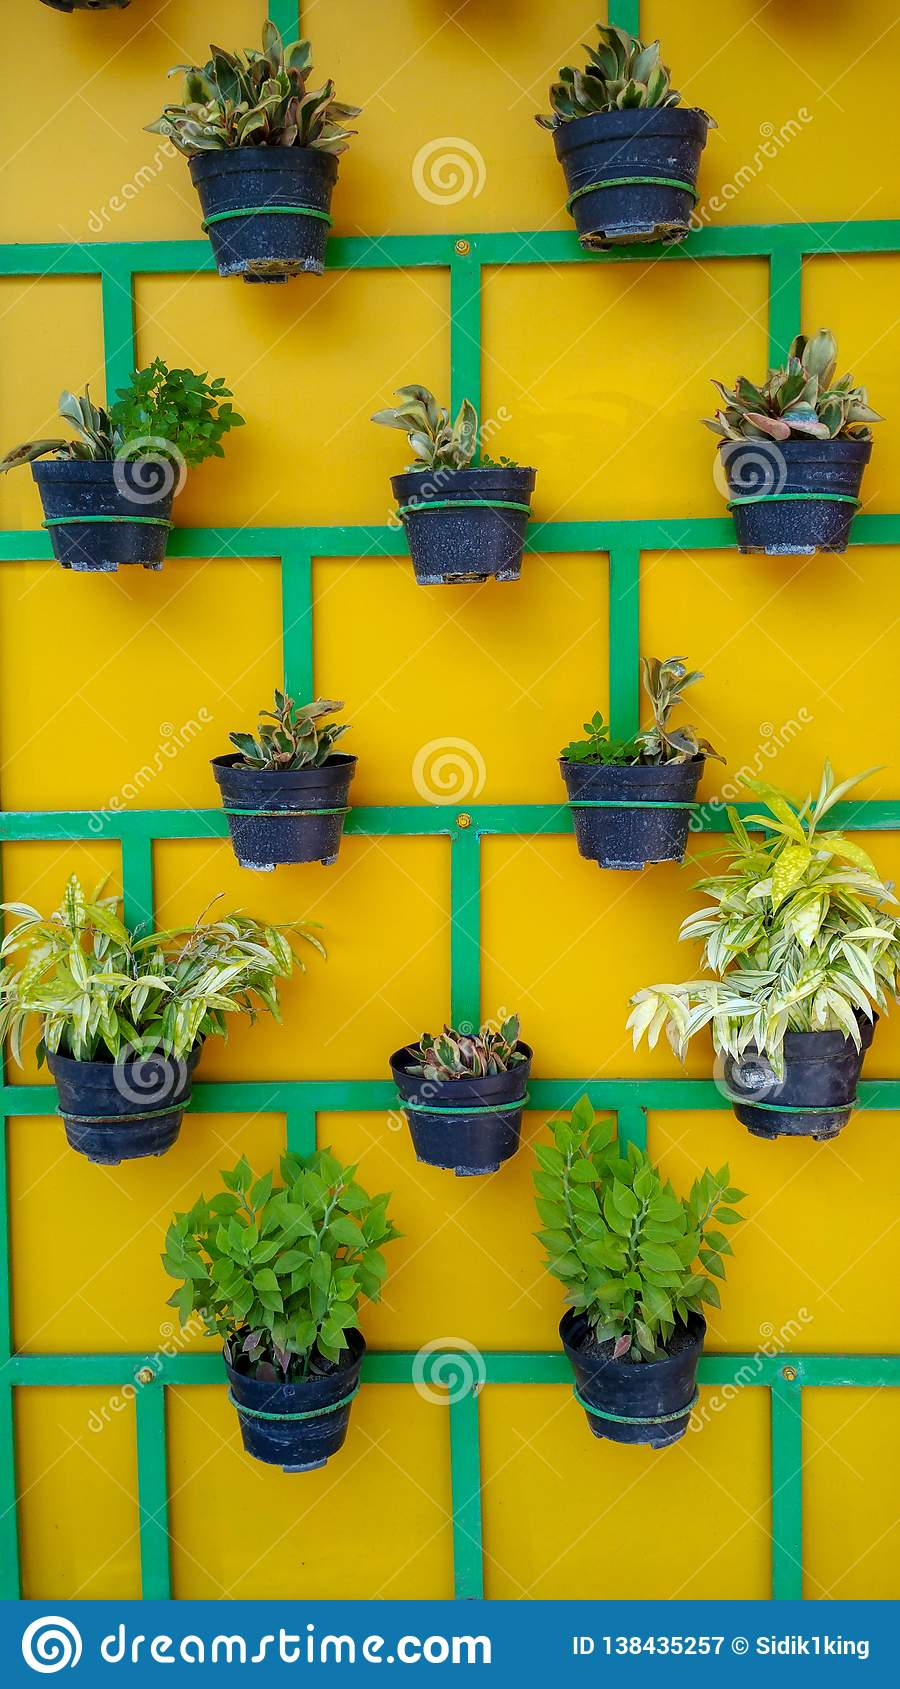 Layout for plant pots on the wall